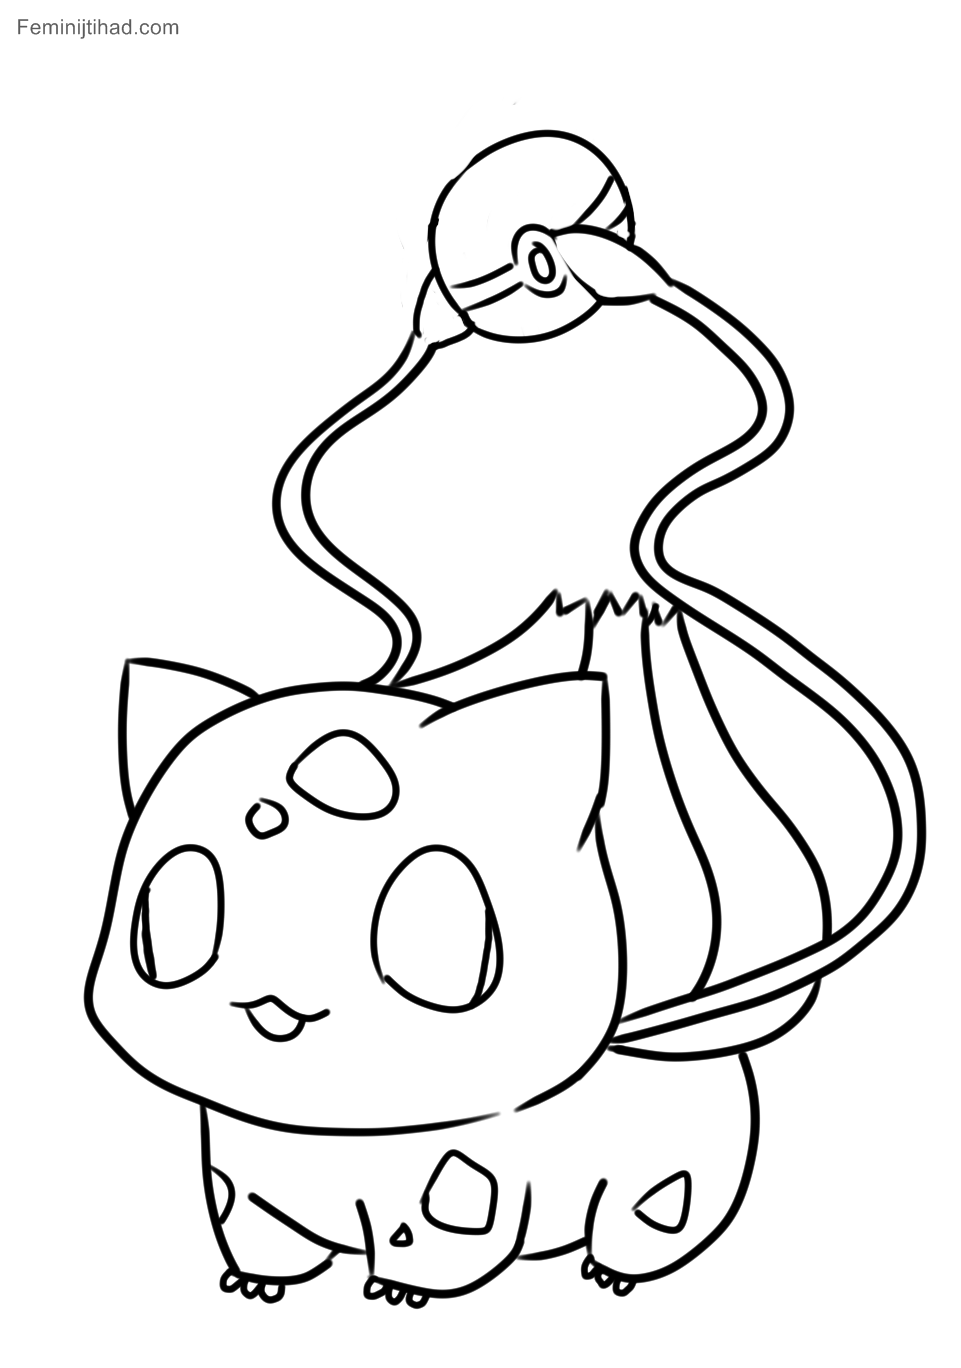 961x1368 Endorsed Bulbasaur Coloring Page Pokemon Pages